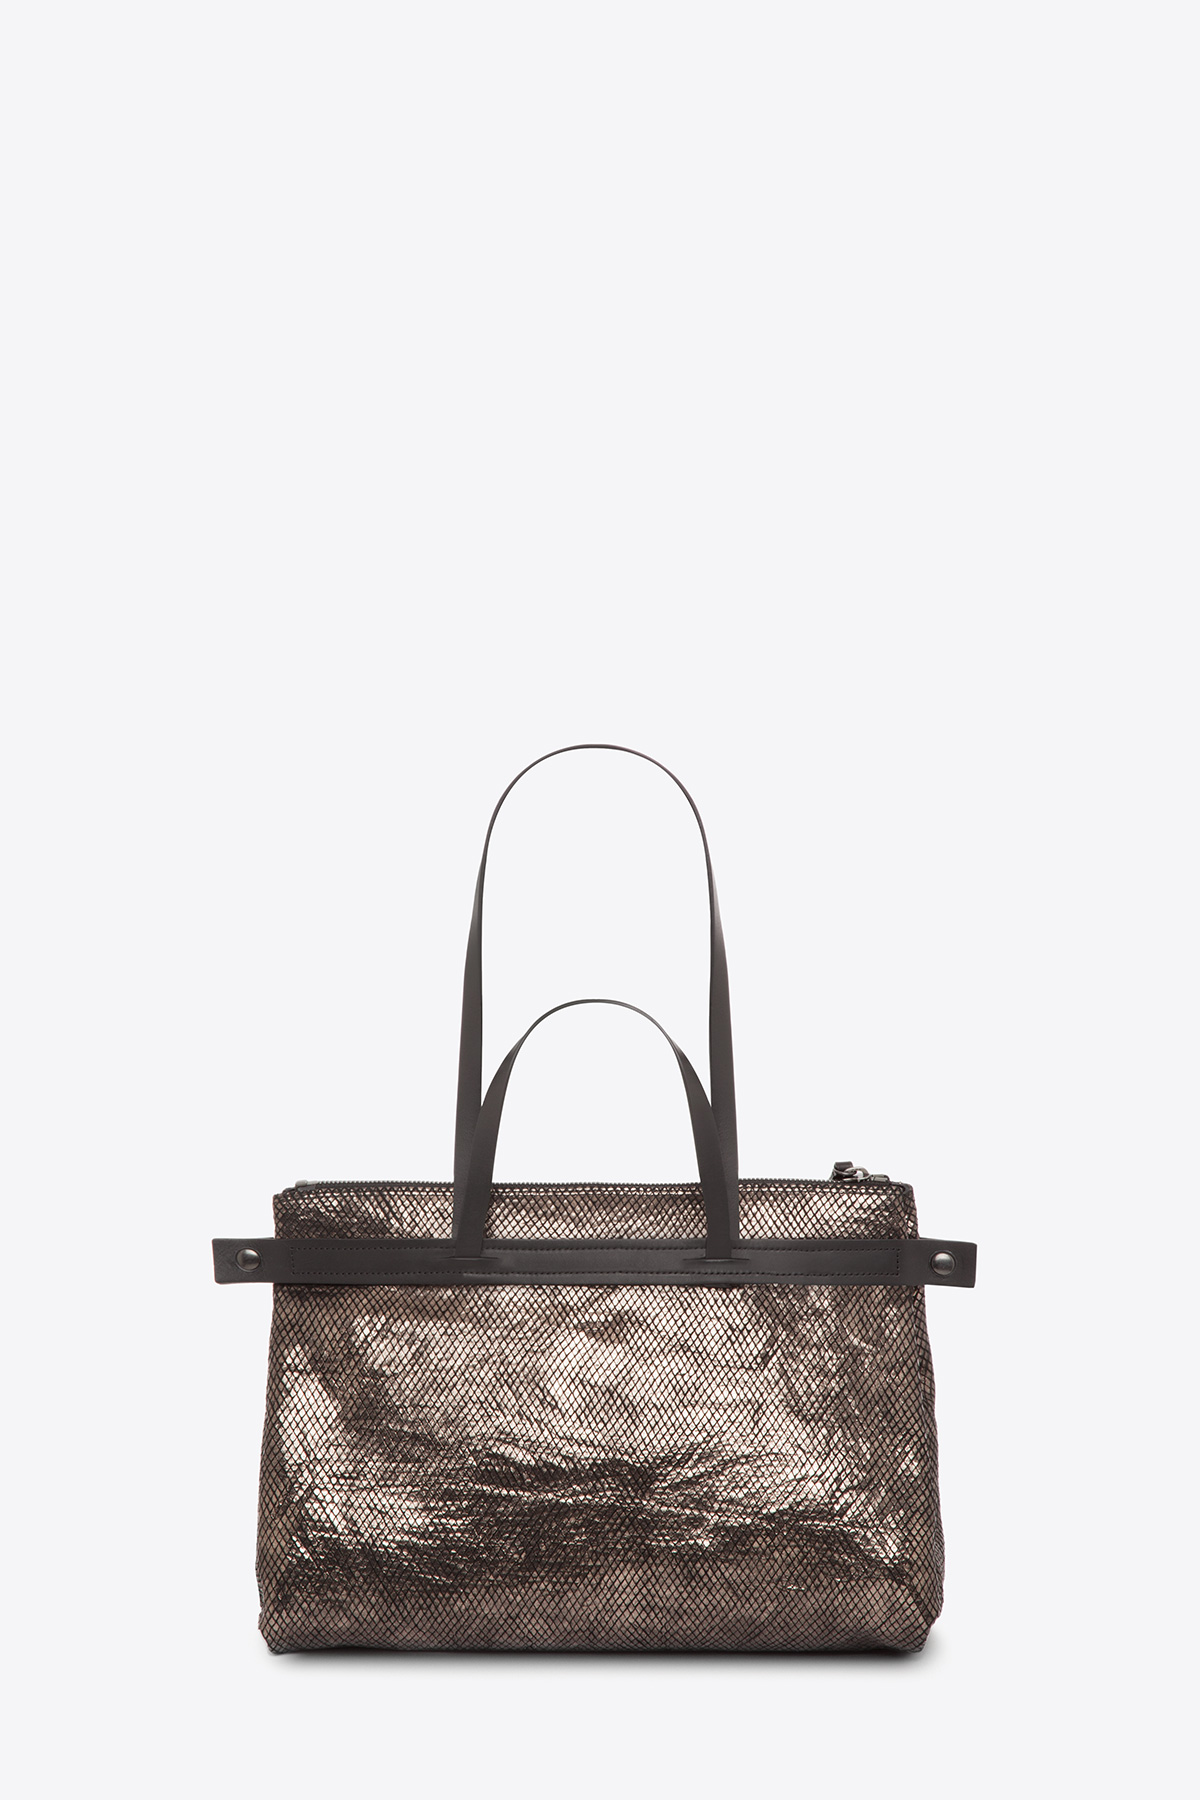 dclr007s-tote-a24-backsnakebronze-back